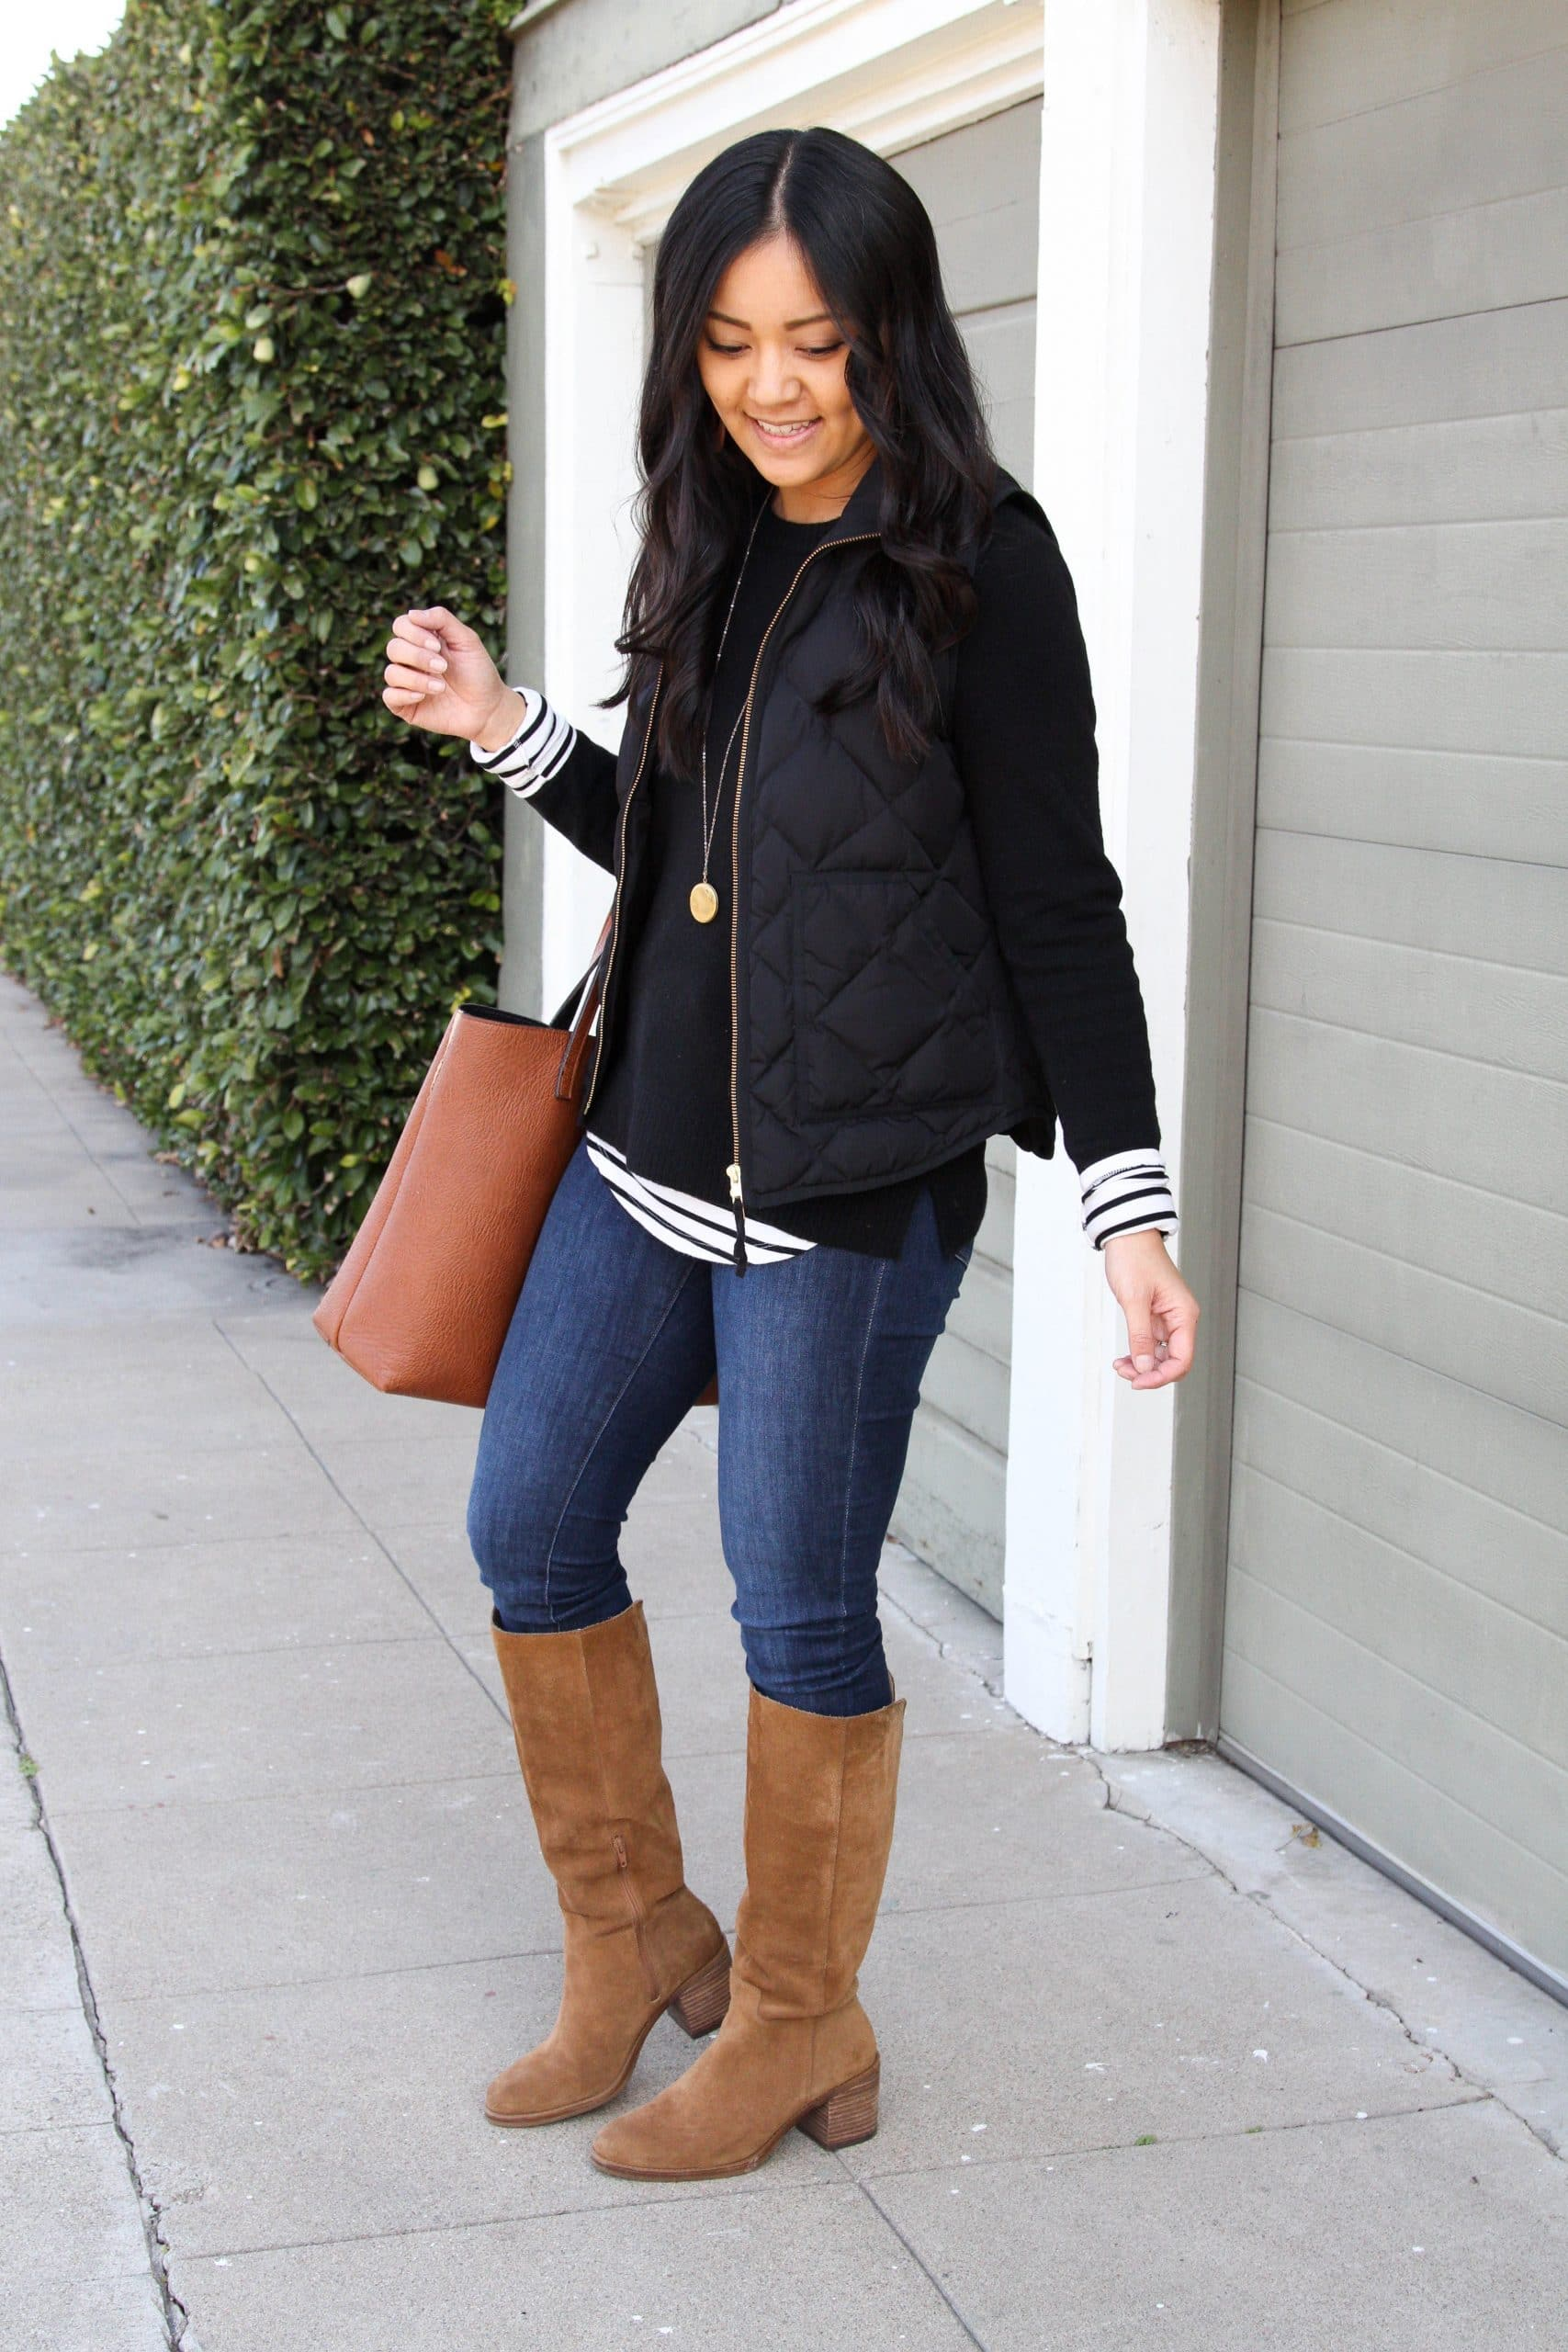 Winter Layering Outfit: black crewneck sweater + black quilted vest + striped tee + cognac suede boots + skinny jeans + cognac tote + gold pendant necklace